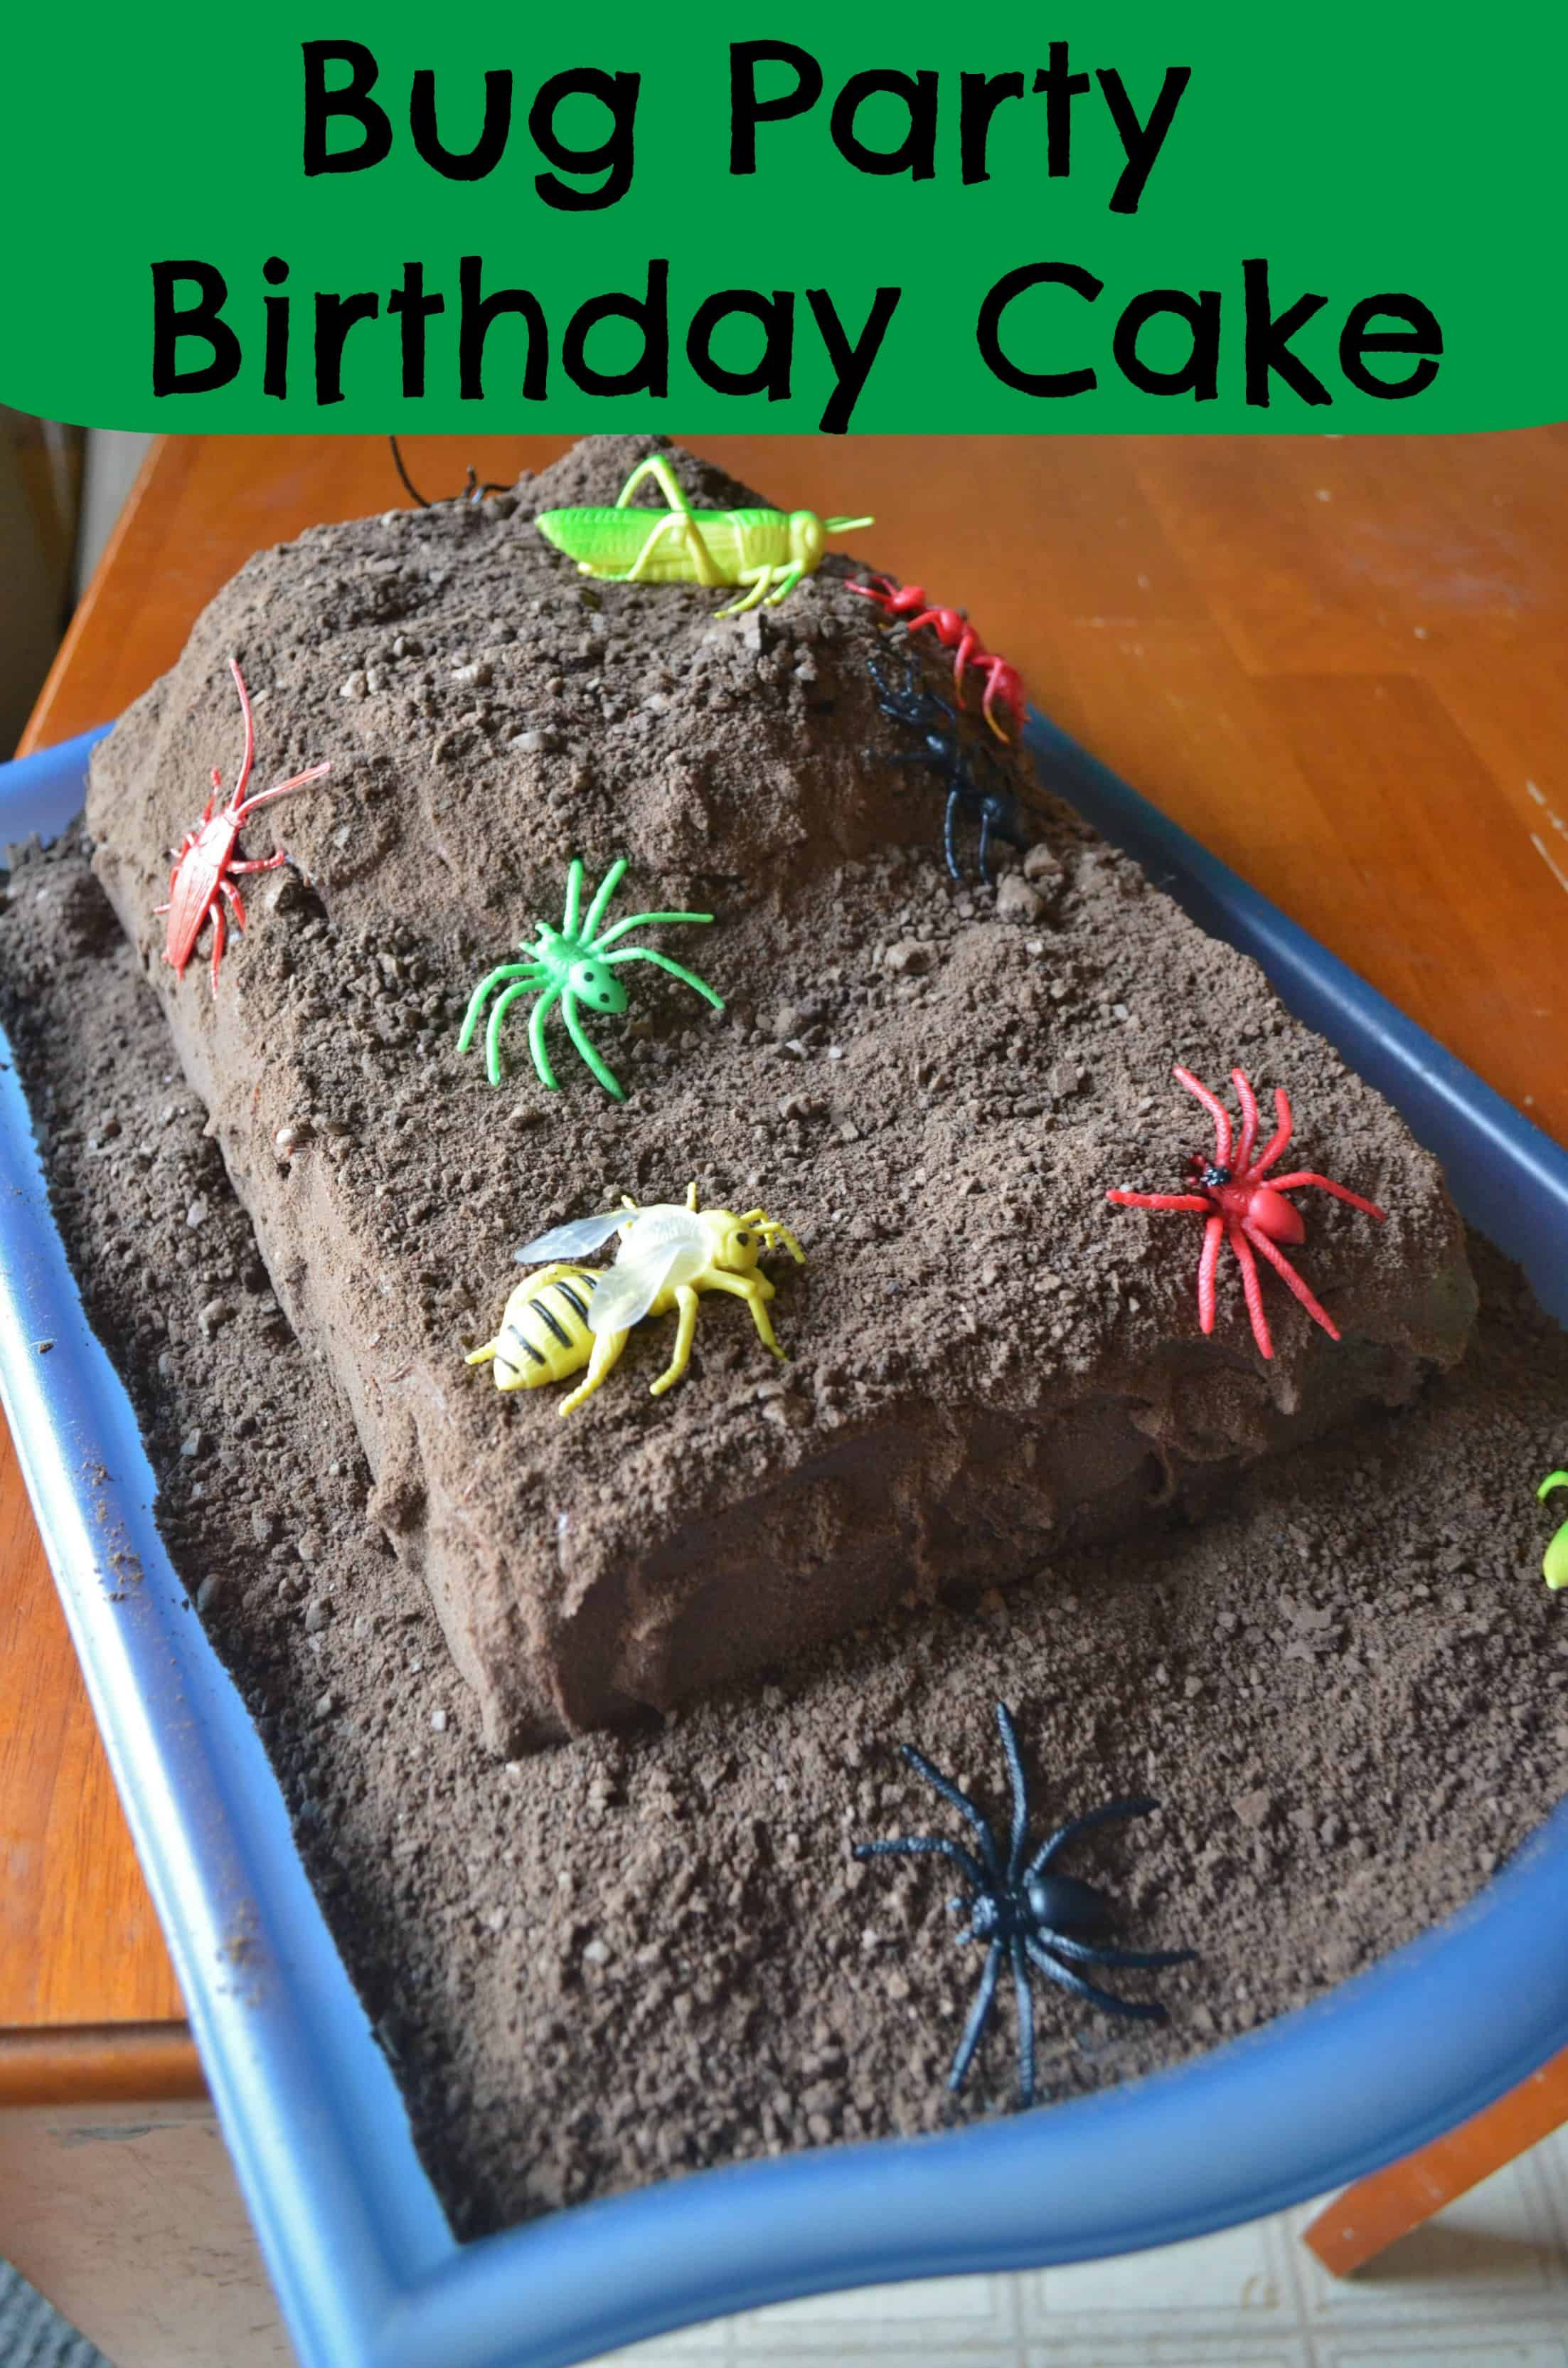 Surprising Bug Party Birthday Cake Tutorial Step By Step Photo Tutorial For Kids Funny Birthday Cards Online Overcheapnameinfo